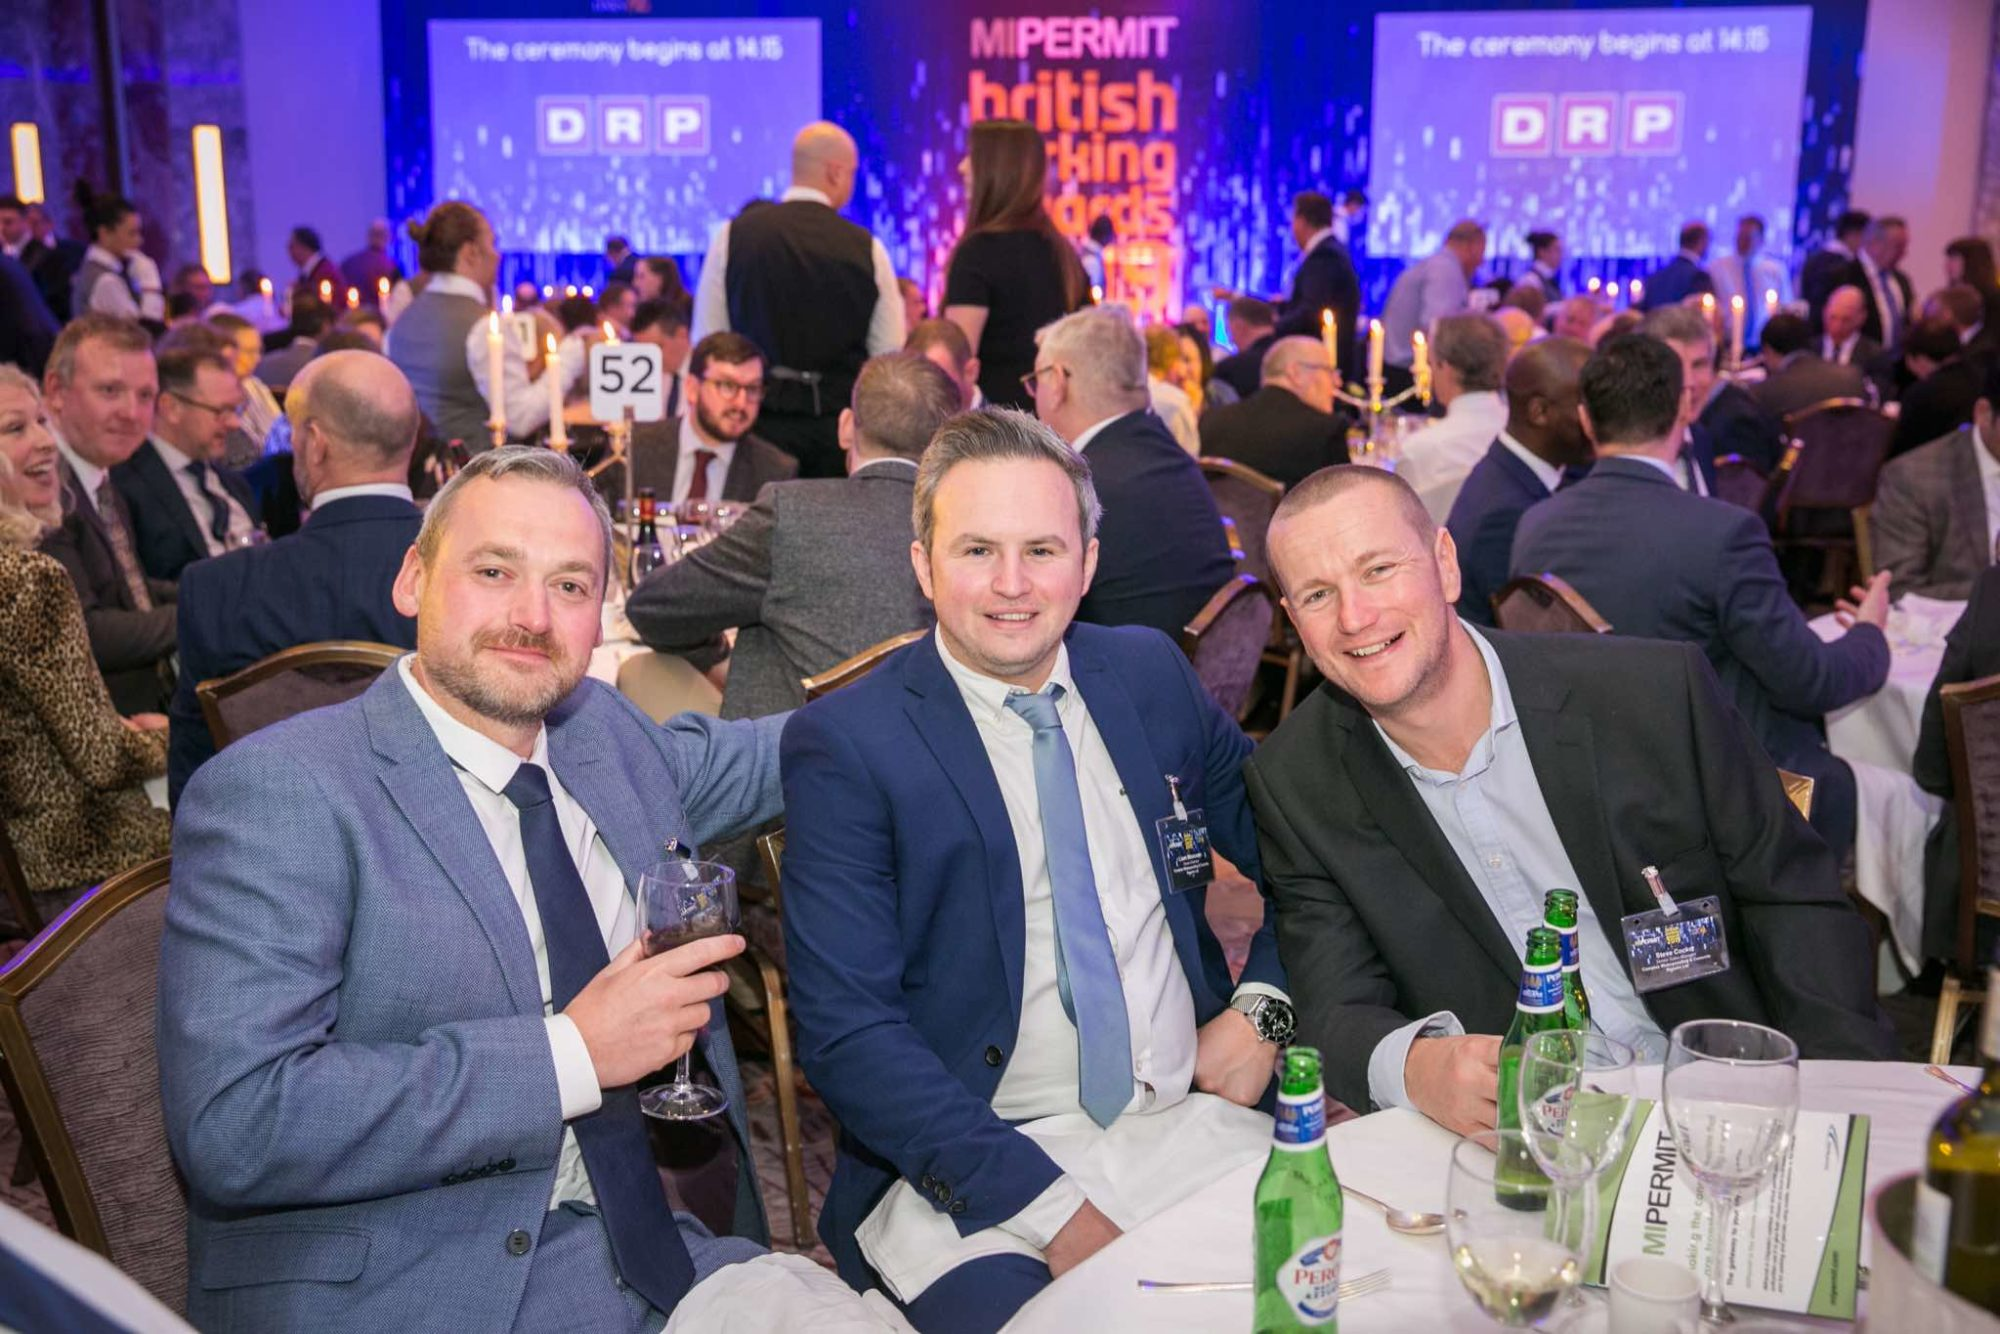 British Parking Awards 2019 Finalists